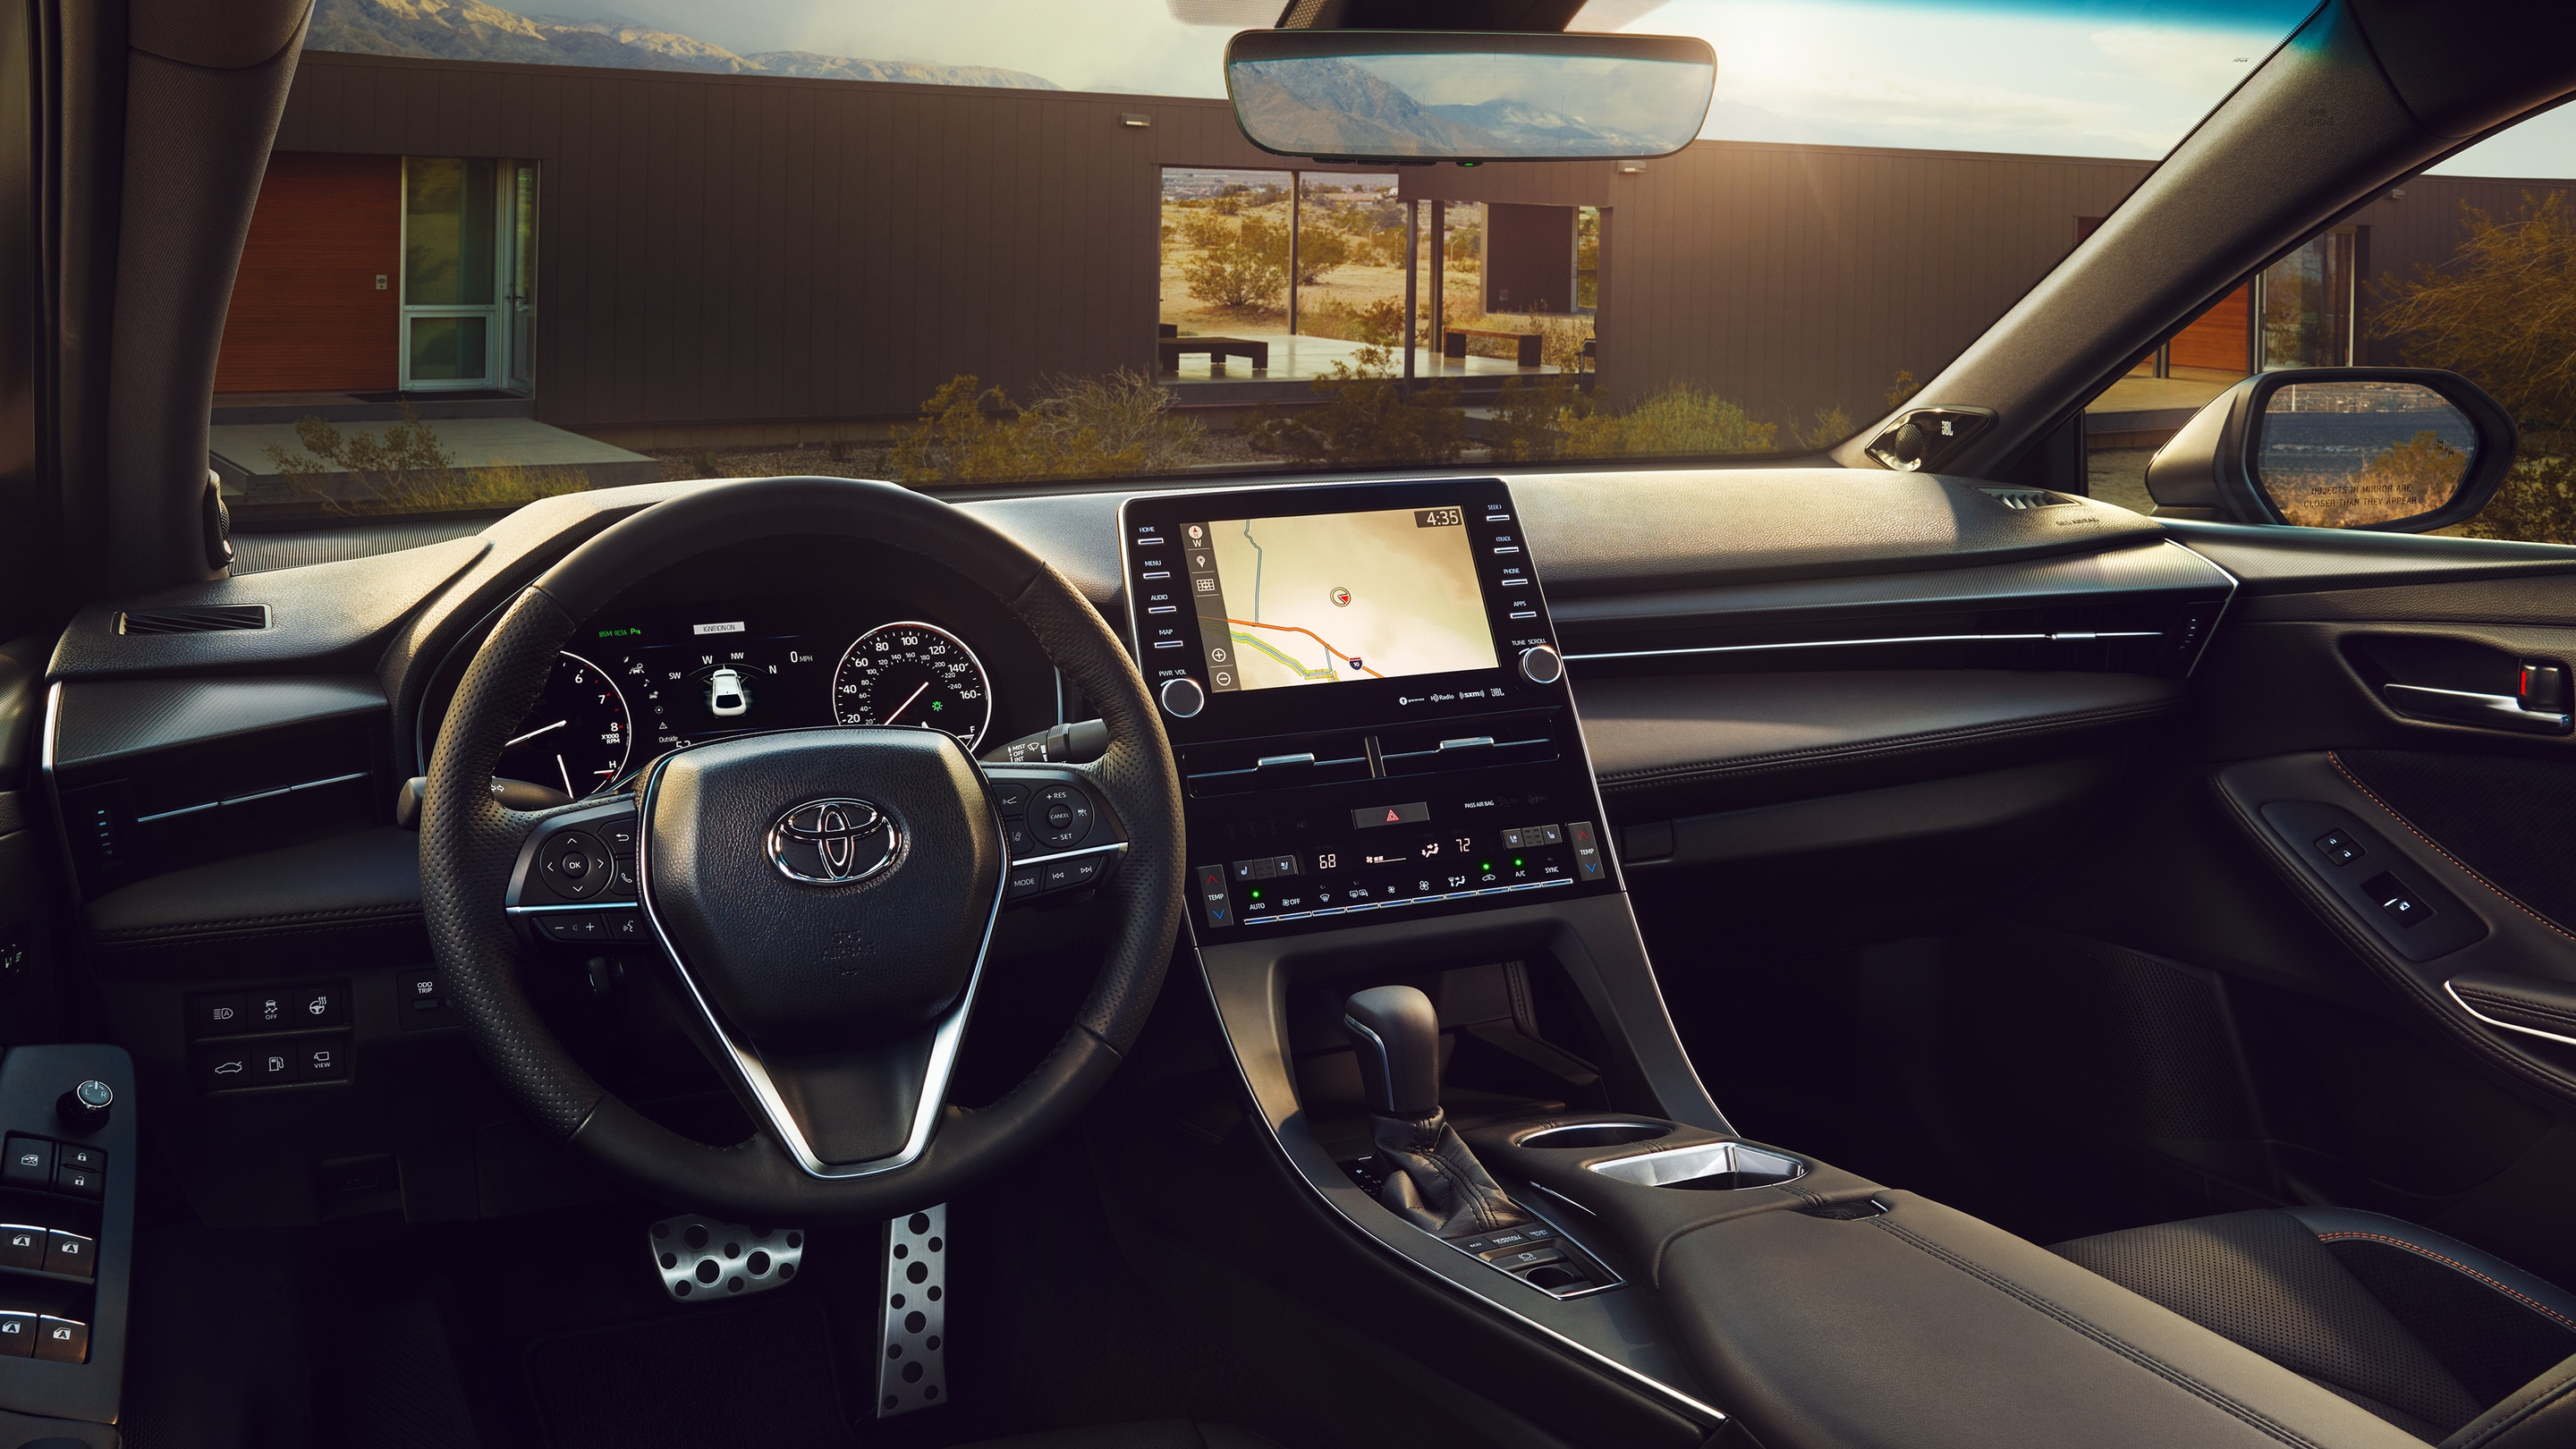 2020 Toyota Avalon - Interior View From Driver Seat